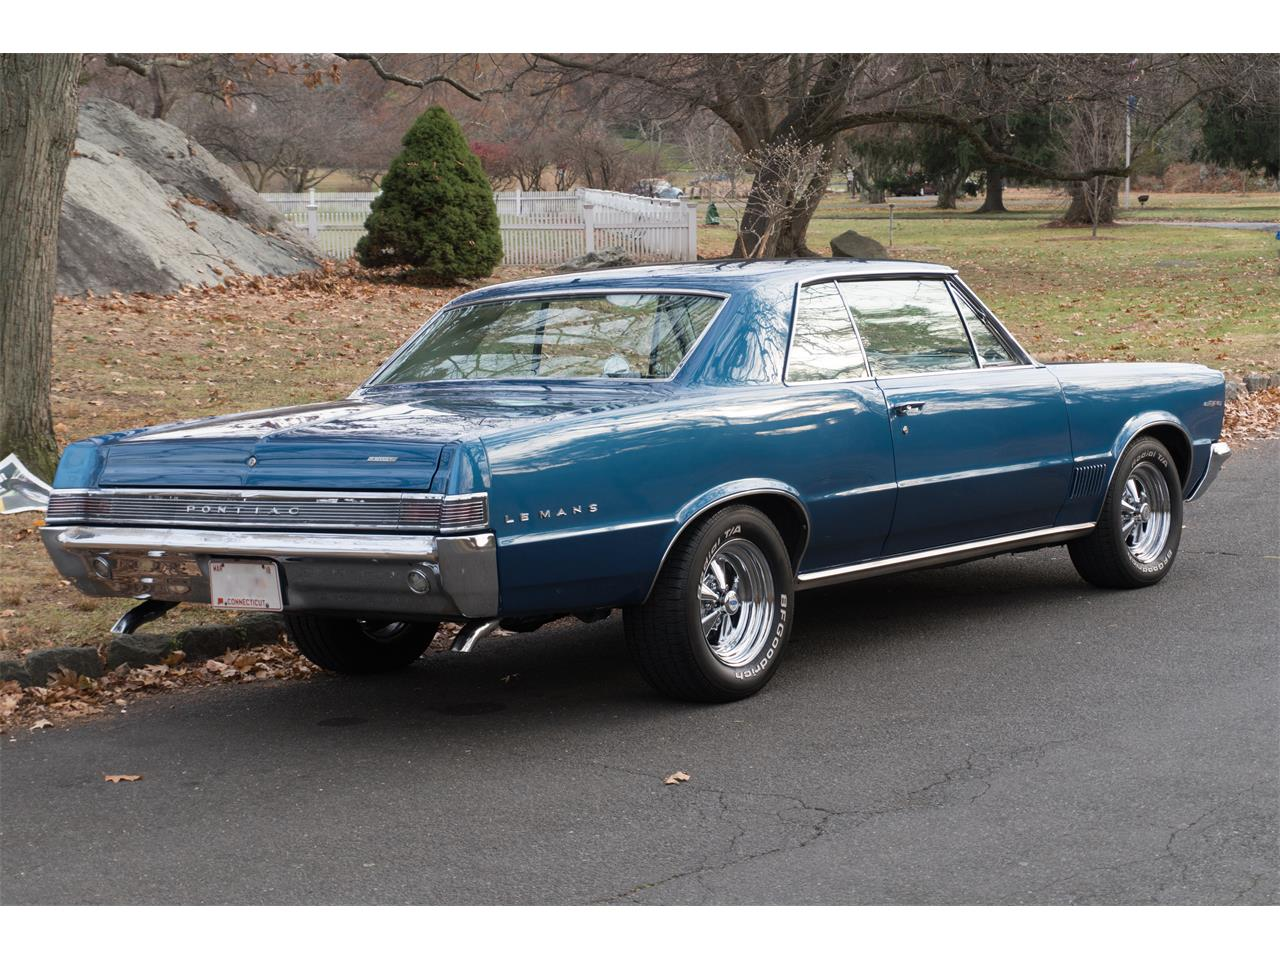 Large Picture of Classic 1965 Pontiac LeMans located in Connecticut - $22,500.00 Offered by a Private Seller - MGO8